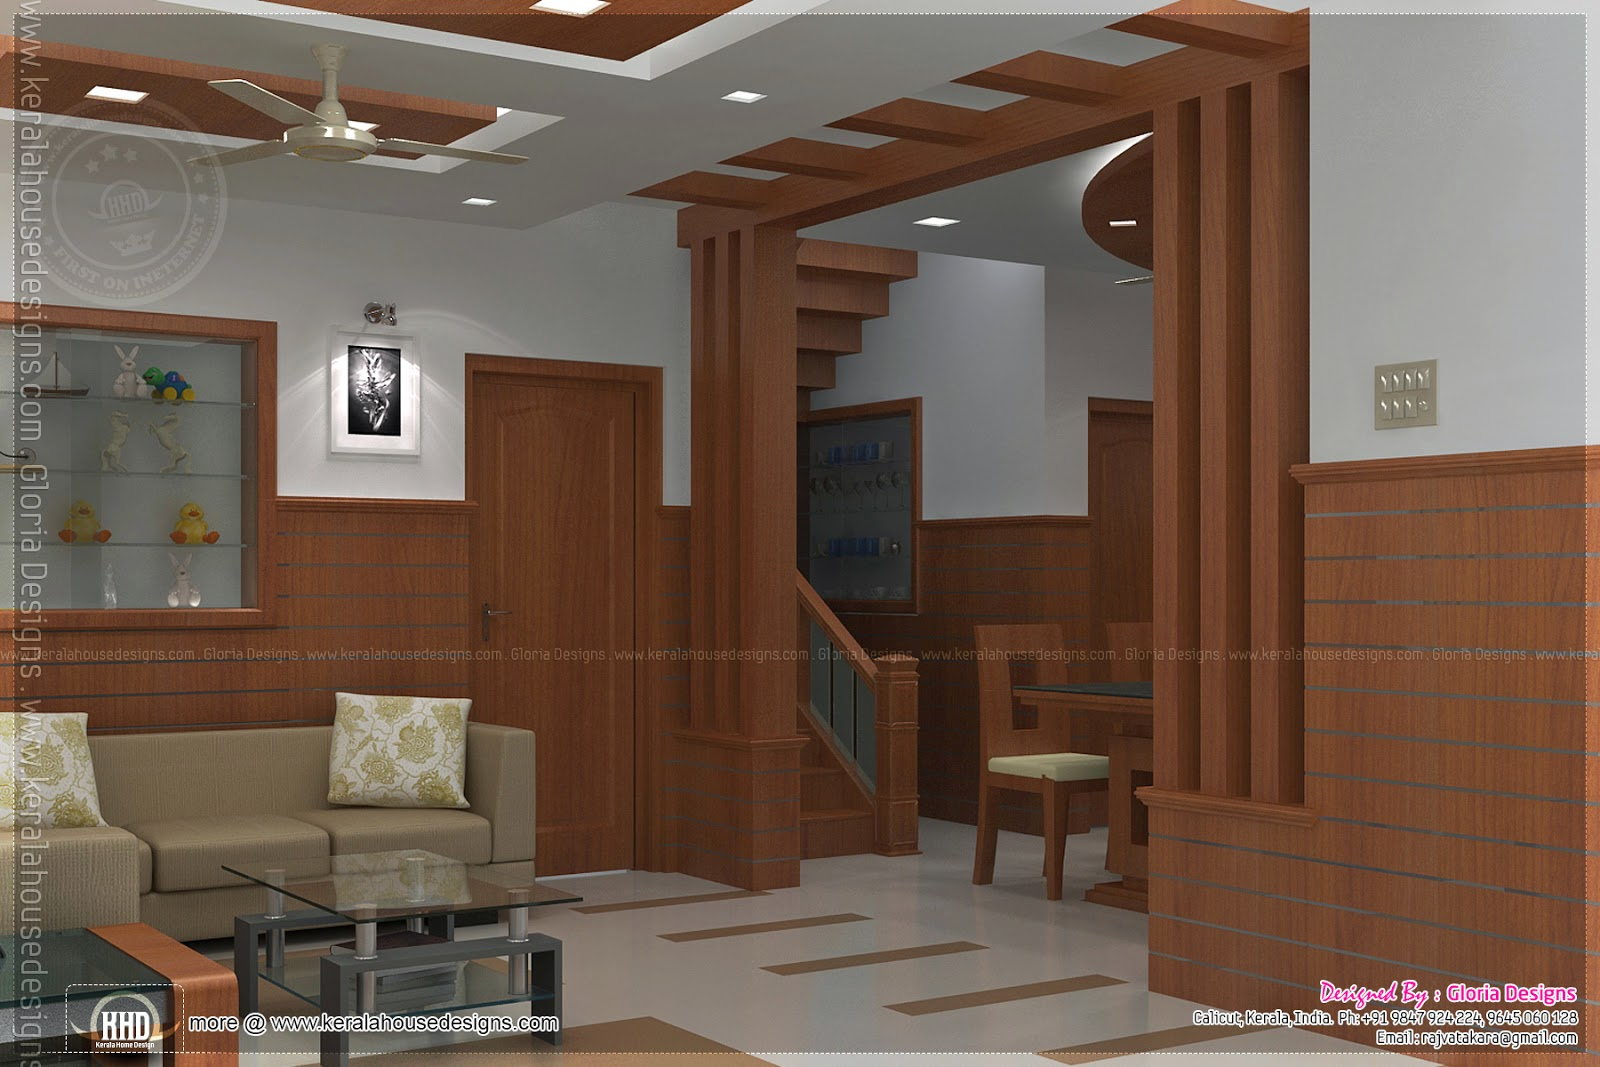 Kerala homes interior design photos style for Kerala homes interior designs